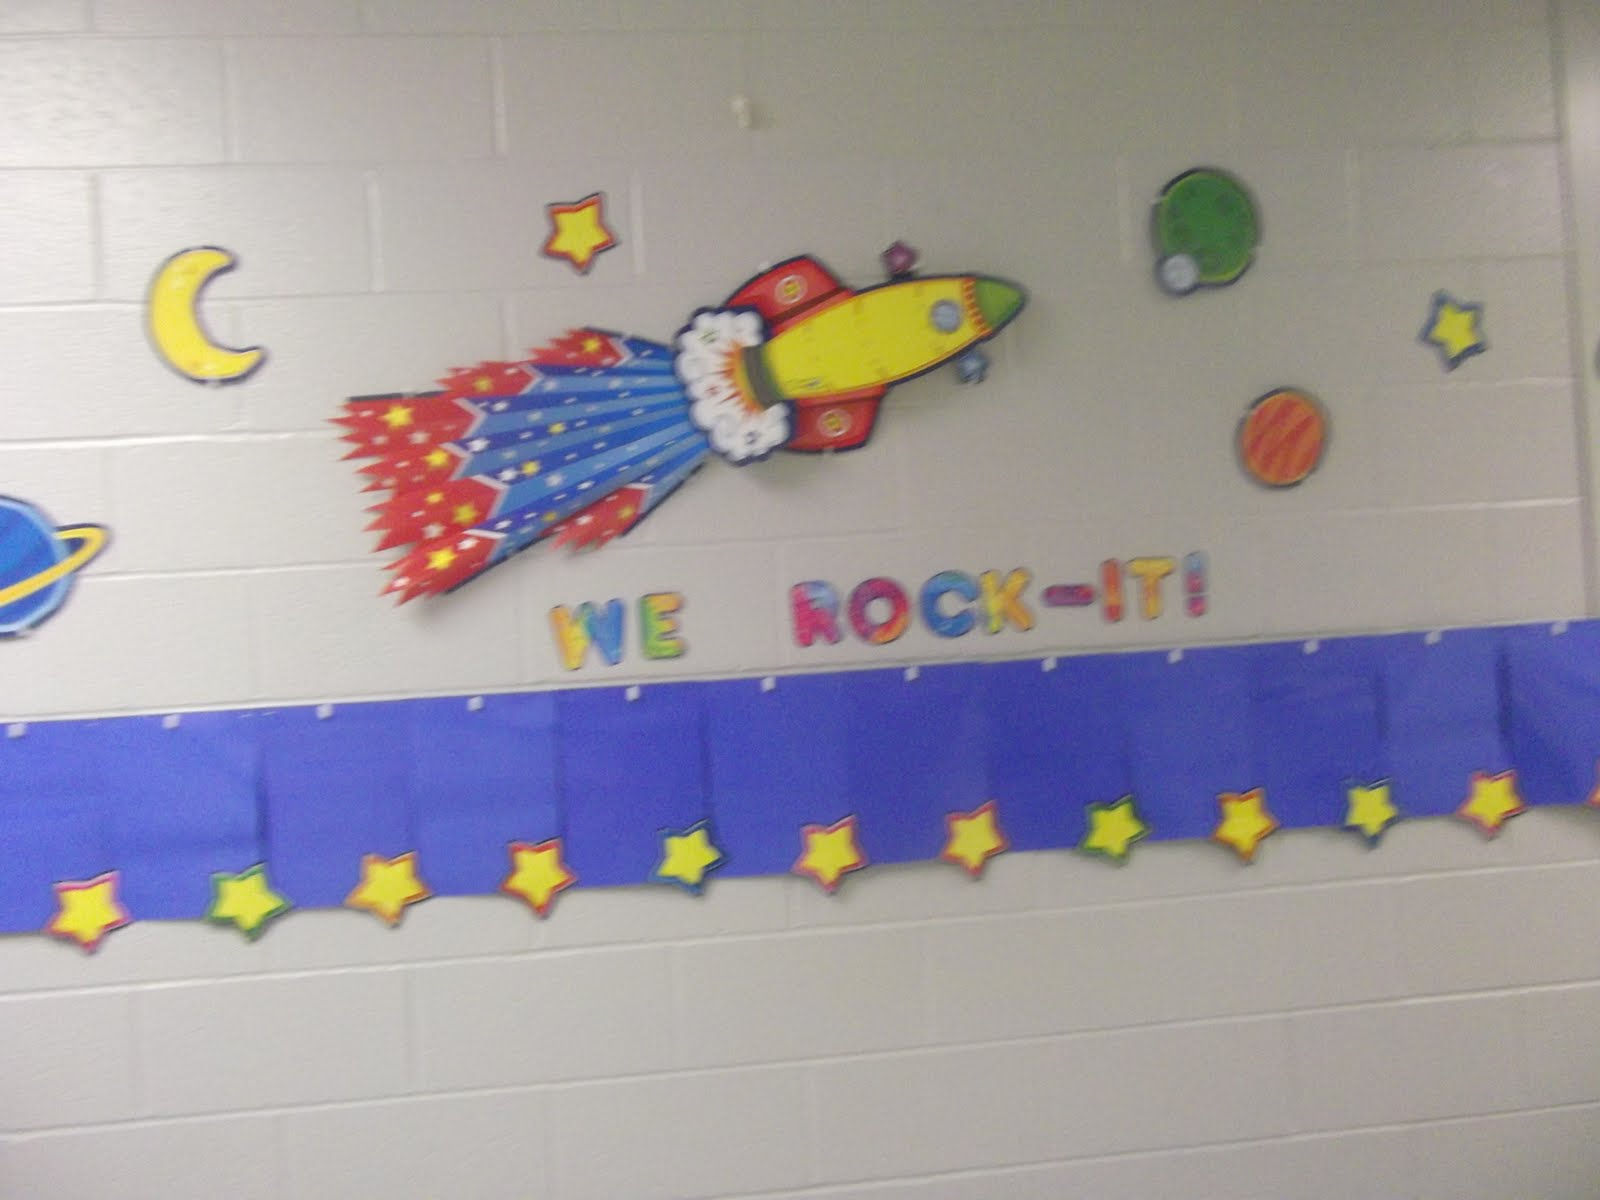 One happy teacher classroom theme robot outer space hallway display we rock it - Outer space classroom decorations ...